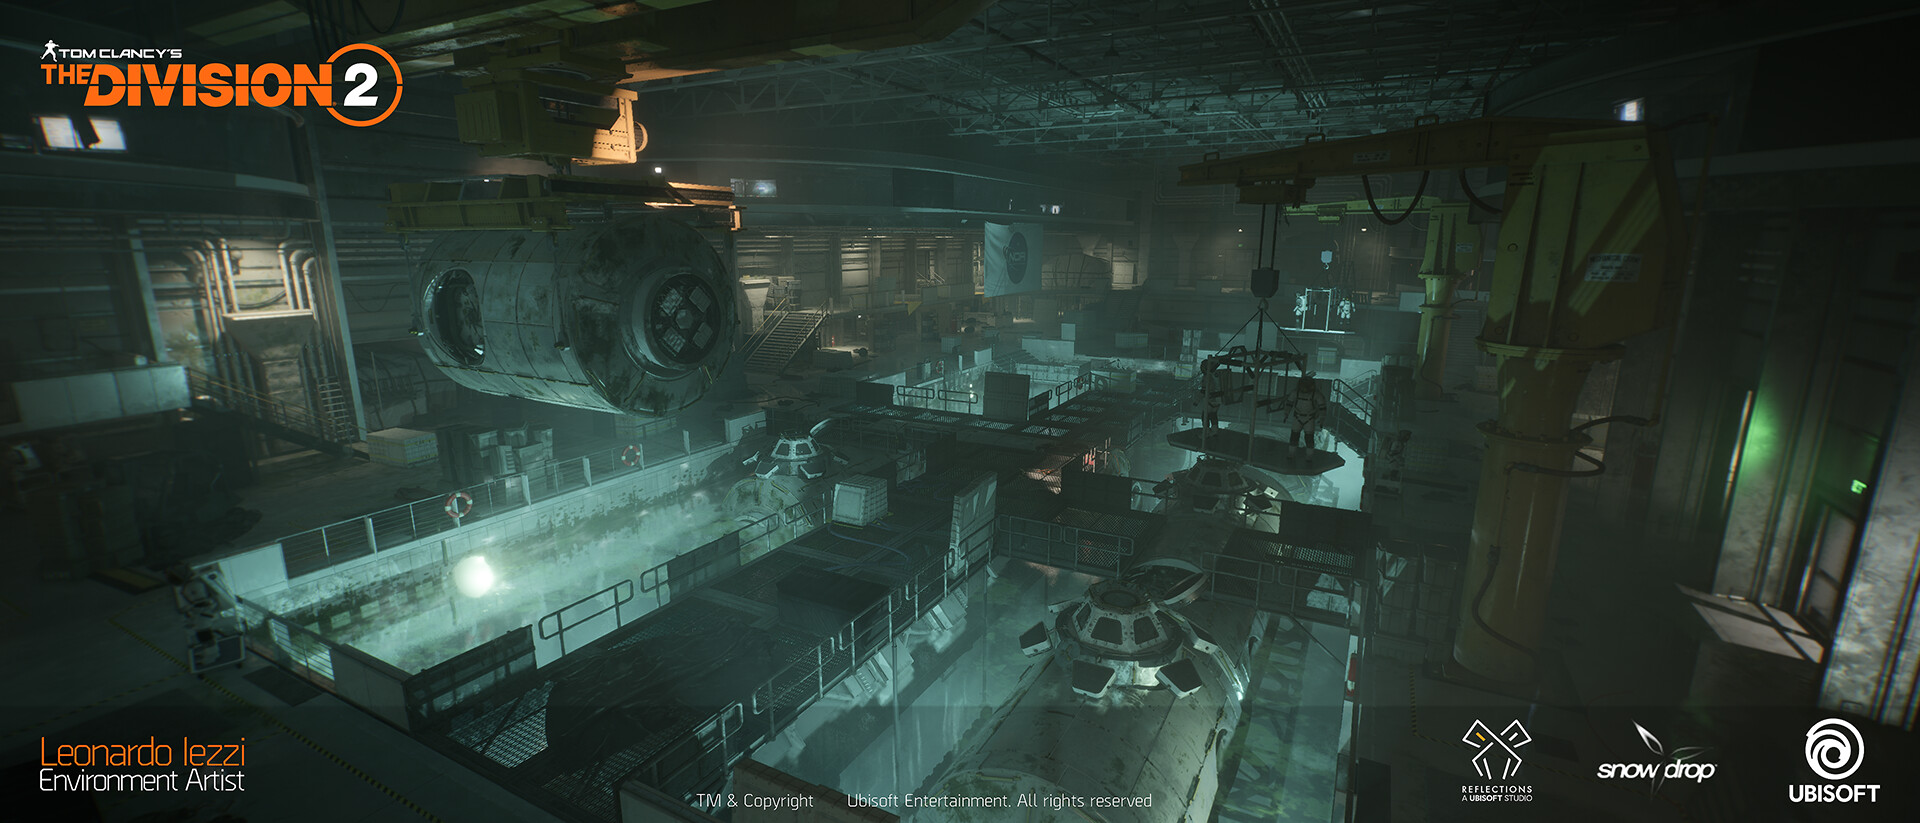 Leonardo iezzi leonardo iezzi the division 2 environment art 06 buoyancy 031 wide